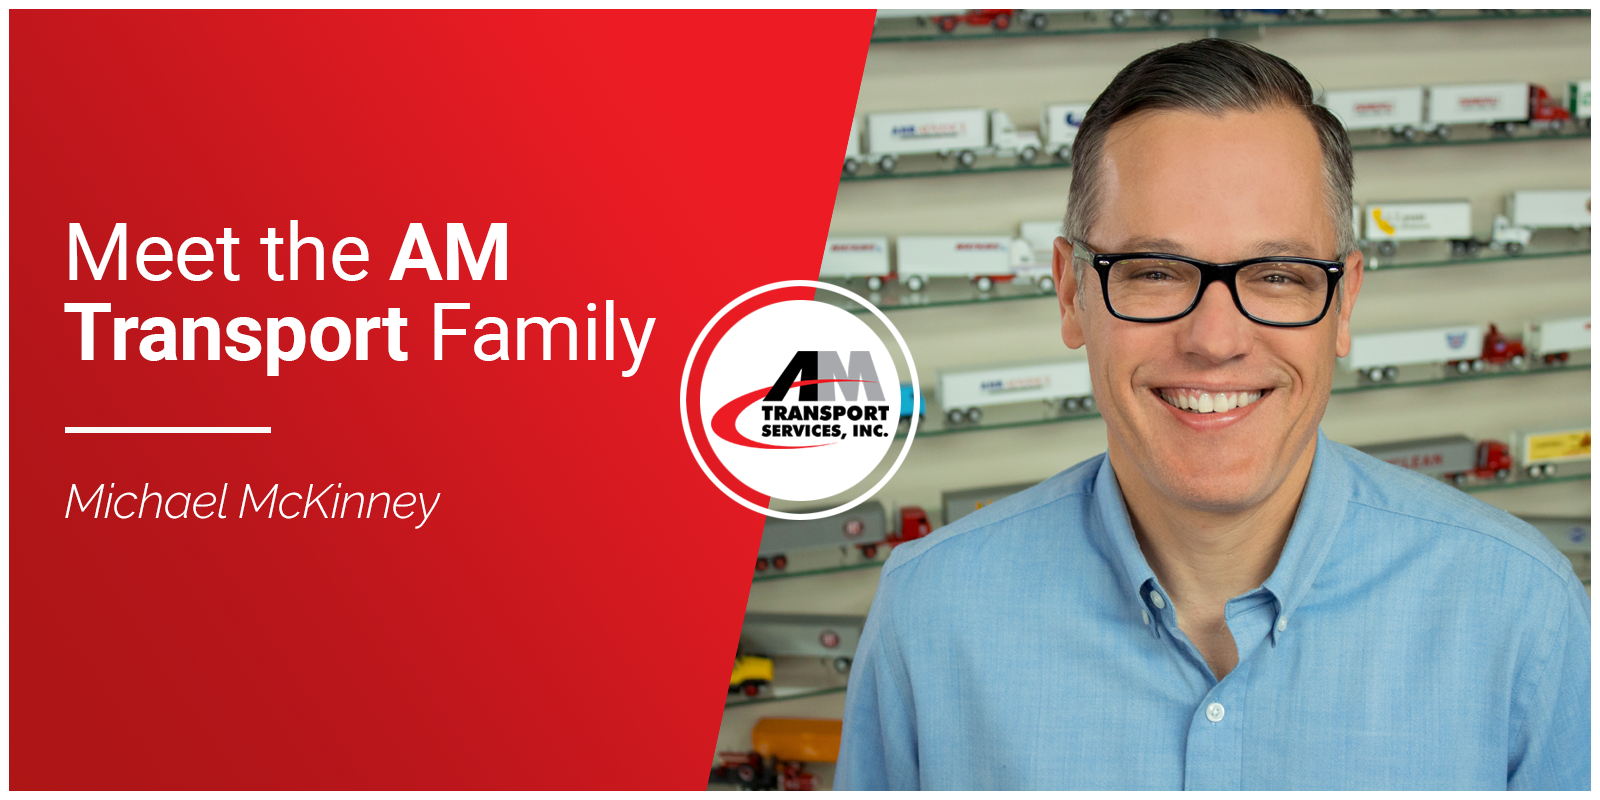 Picture of Michael McKinney with title: Meet the AM Transport Family